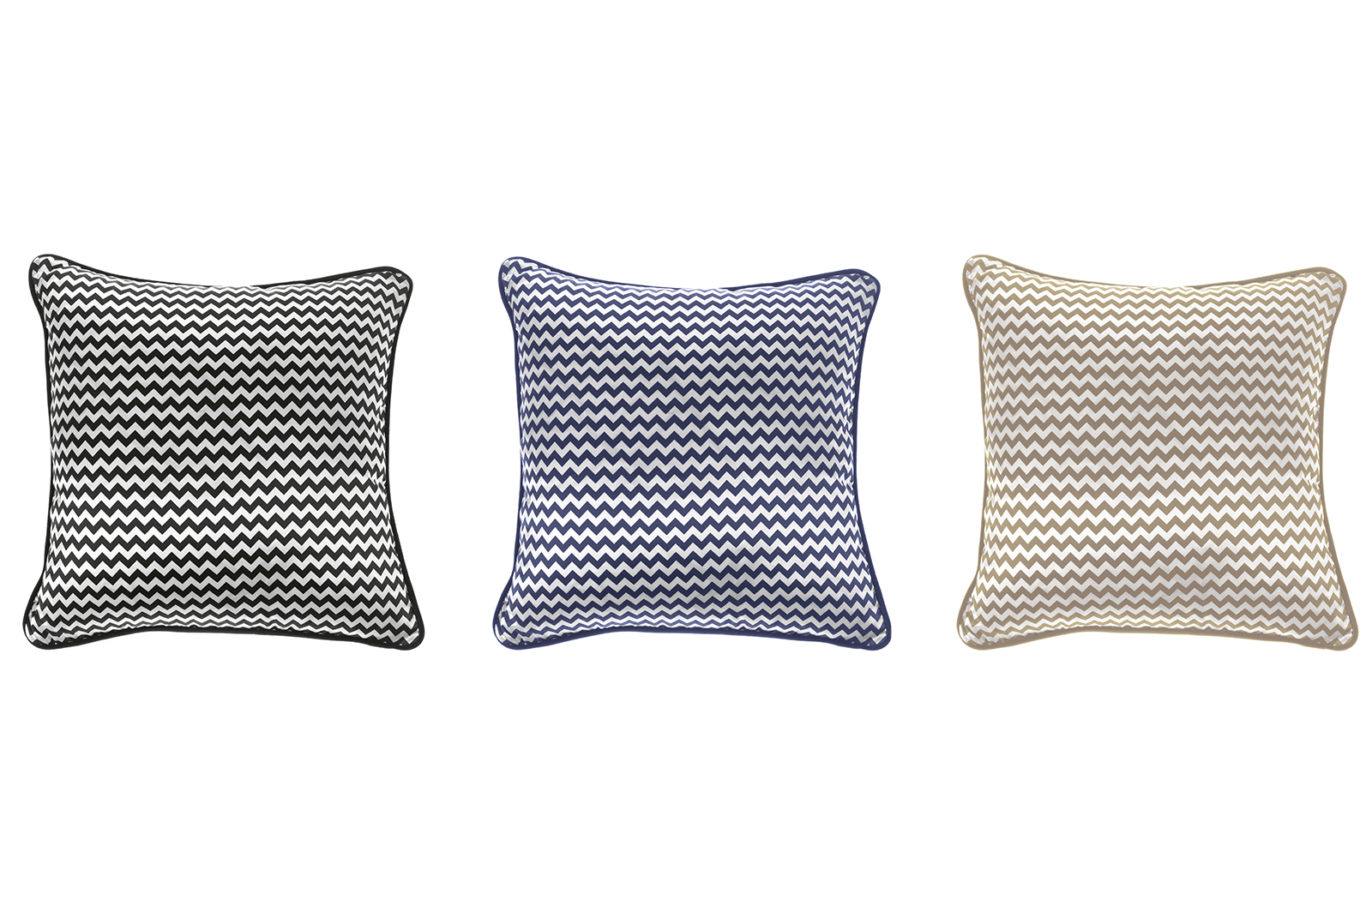 Gianfranco Ferre Home Chevron Cushion 03